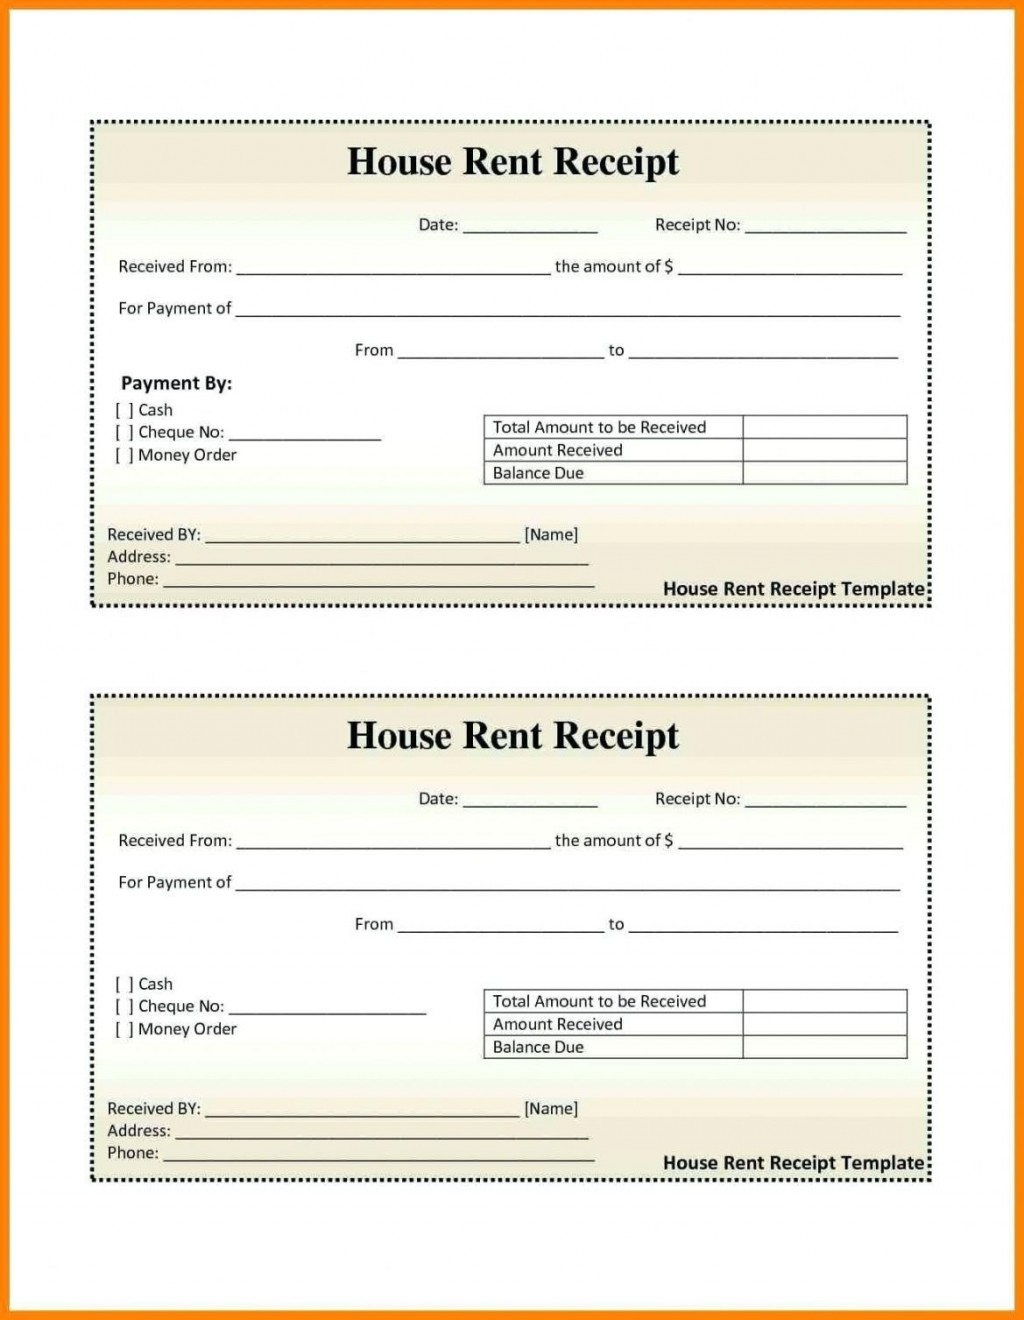 000 Excellent House Rent Receipt Sample Doc Photo  Template India Bill Format Word Document Pdf DownloadLarge